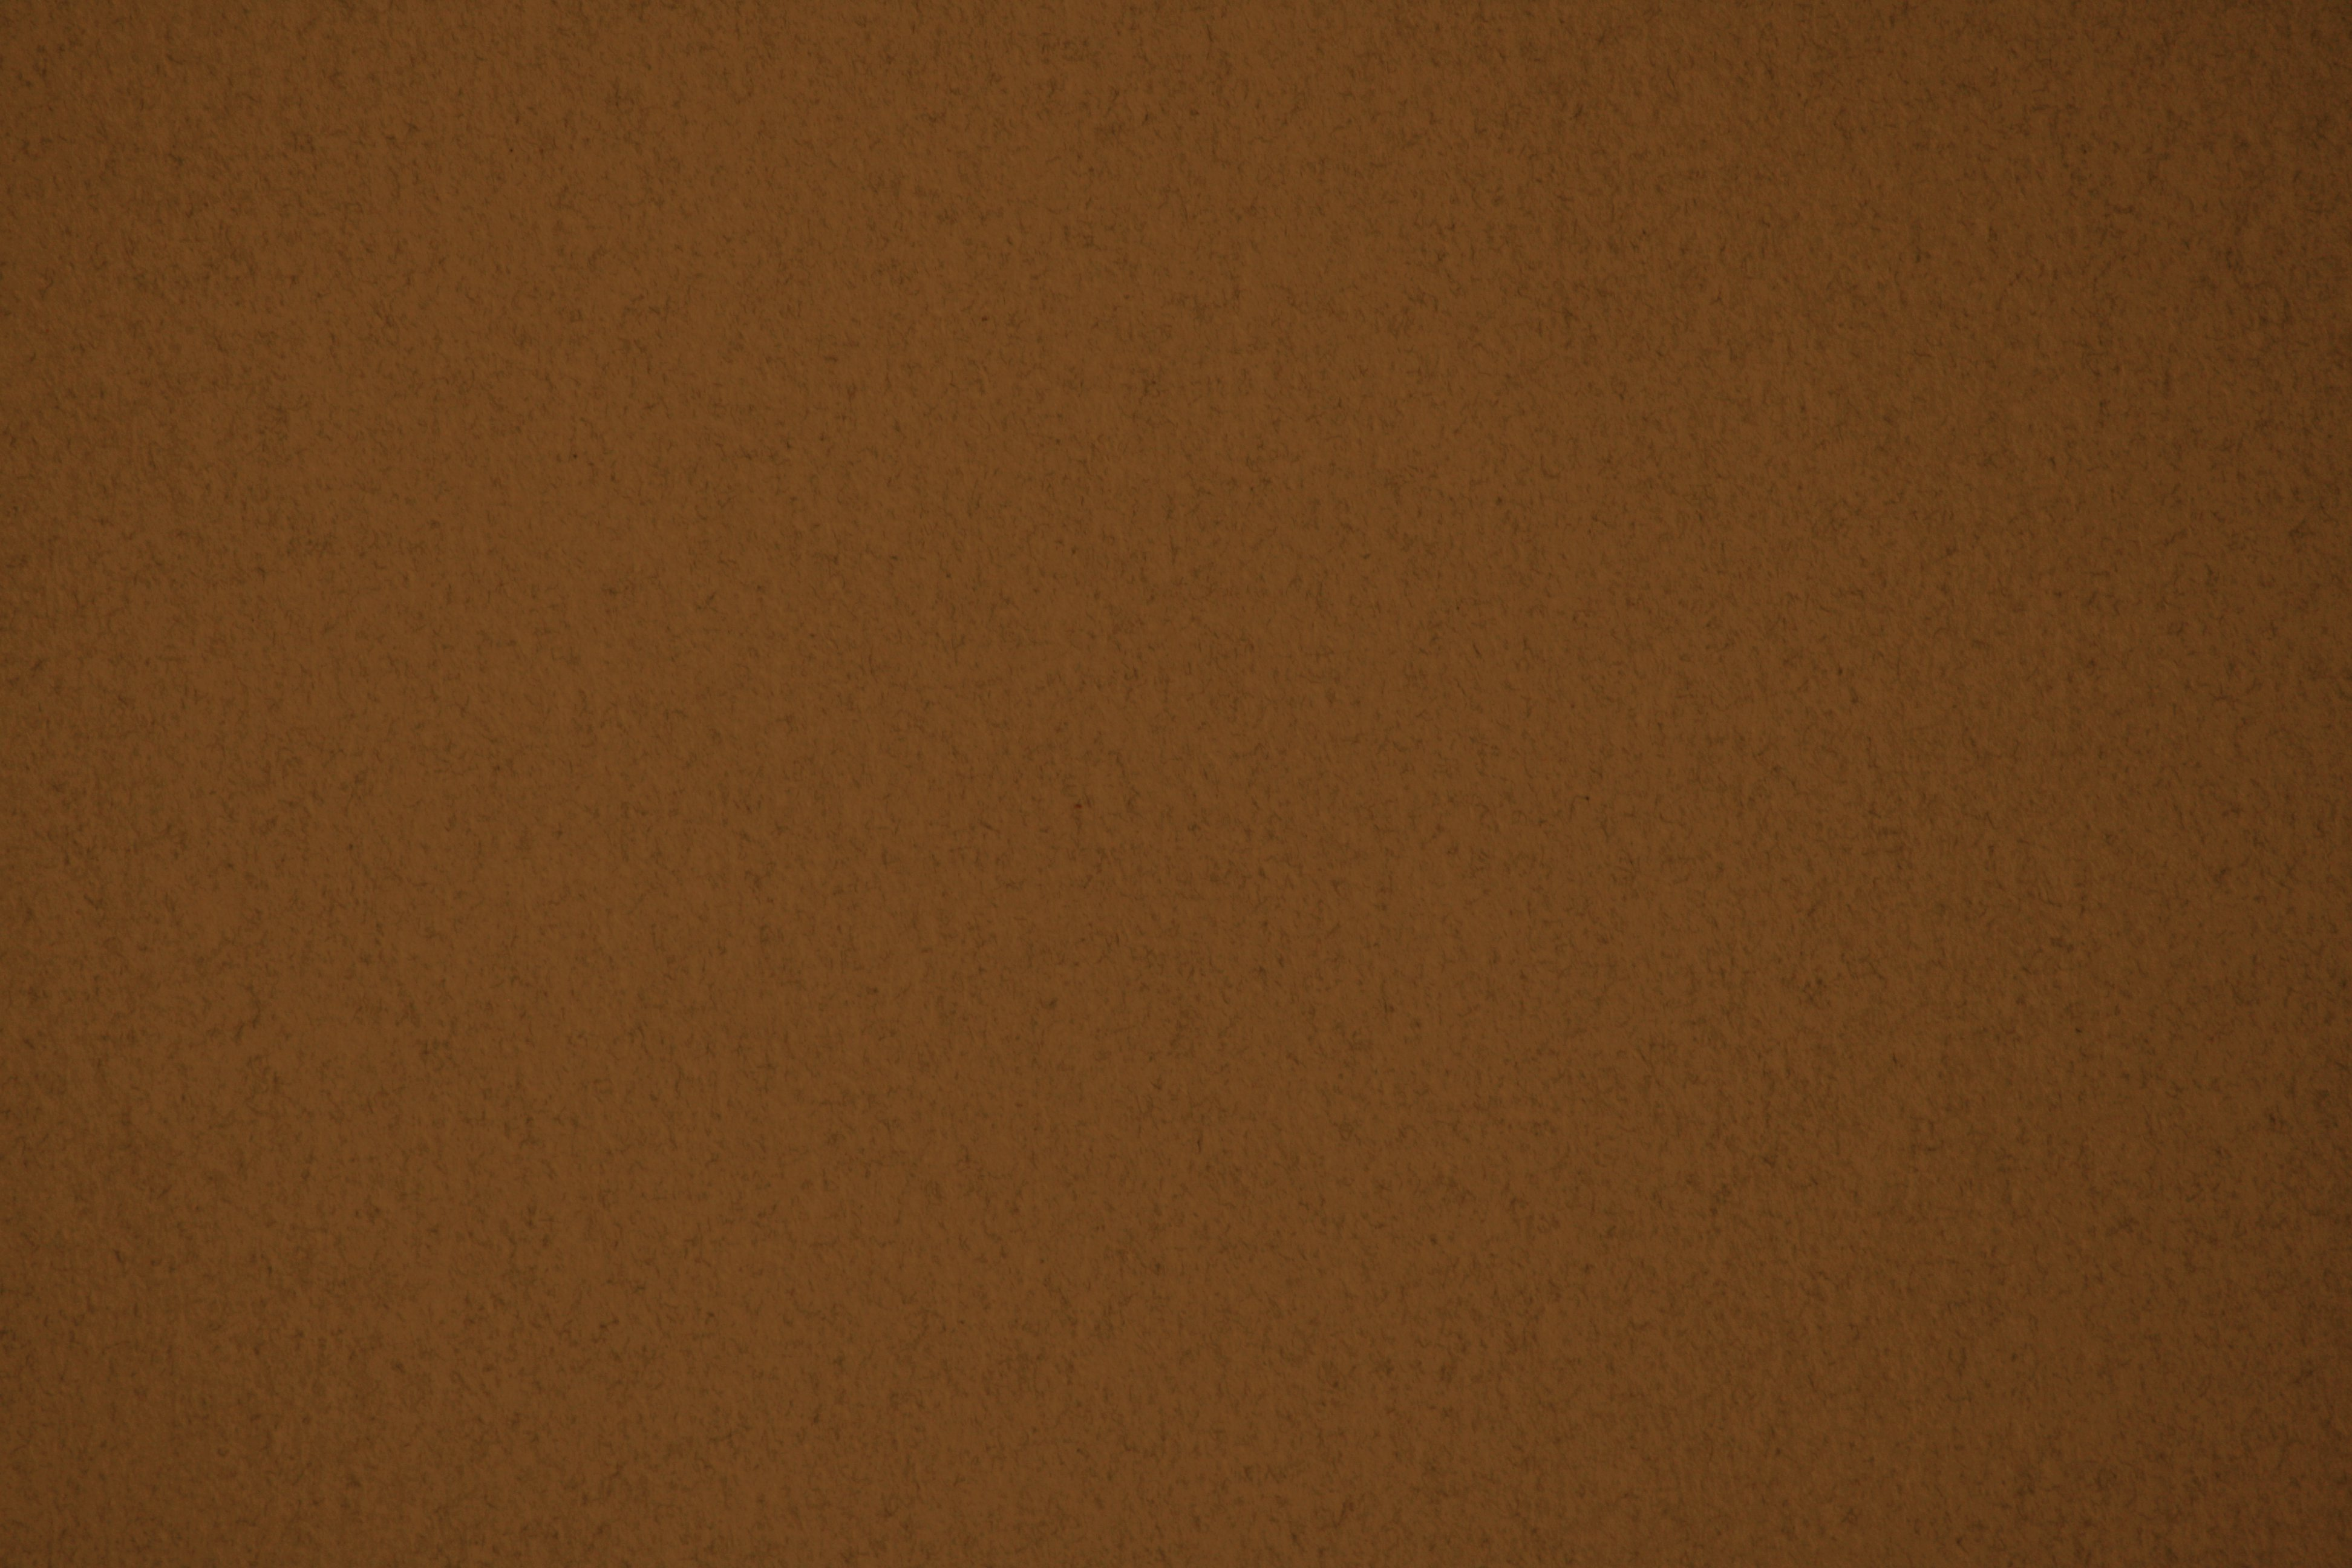 Golden Brown Speckled Paper Texture Picture Photograph Photos 3888x2592